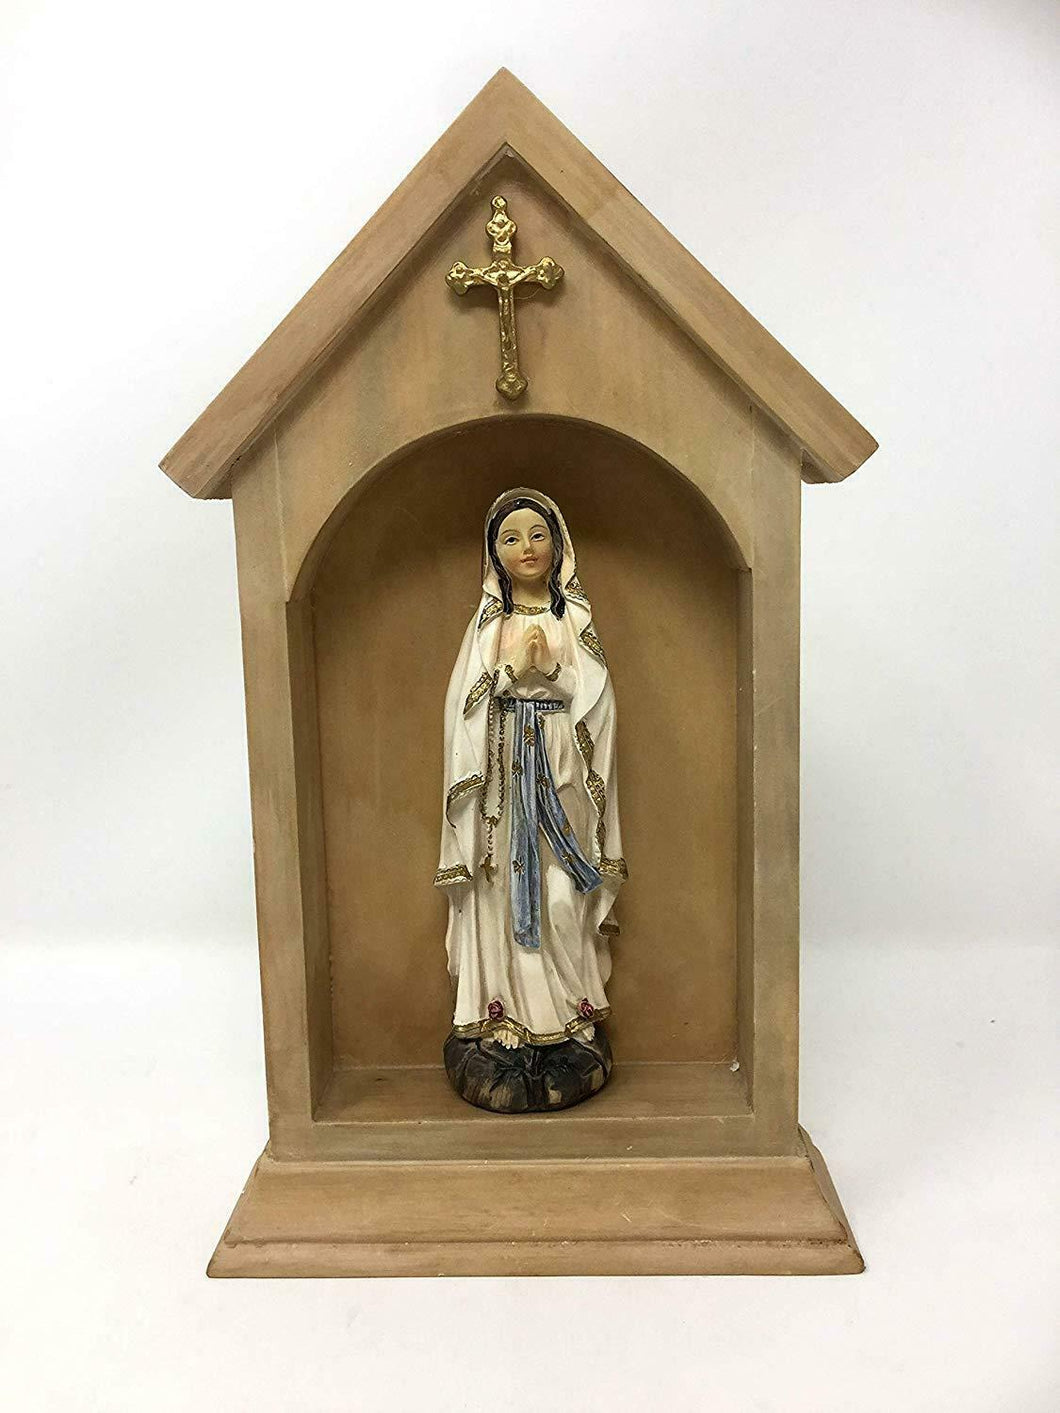 Blessed Virgin Mary Our Lady of Lourdes Statue Ornament Religious Figurine